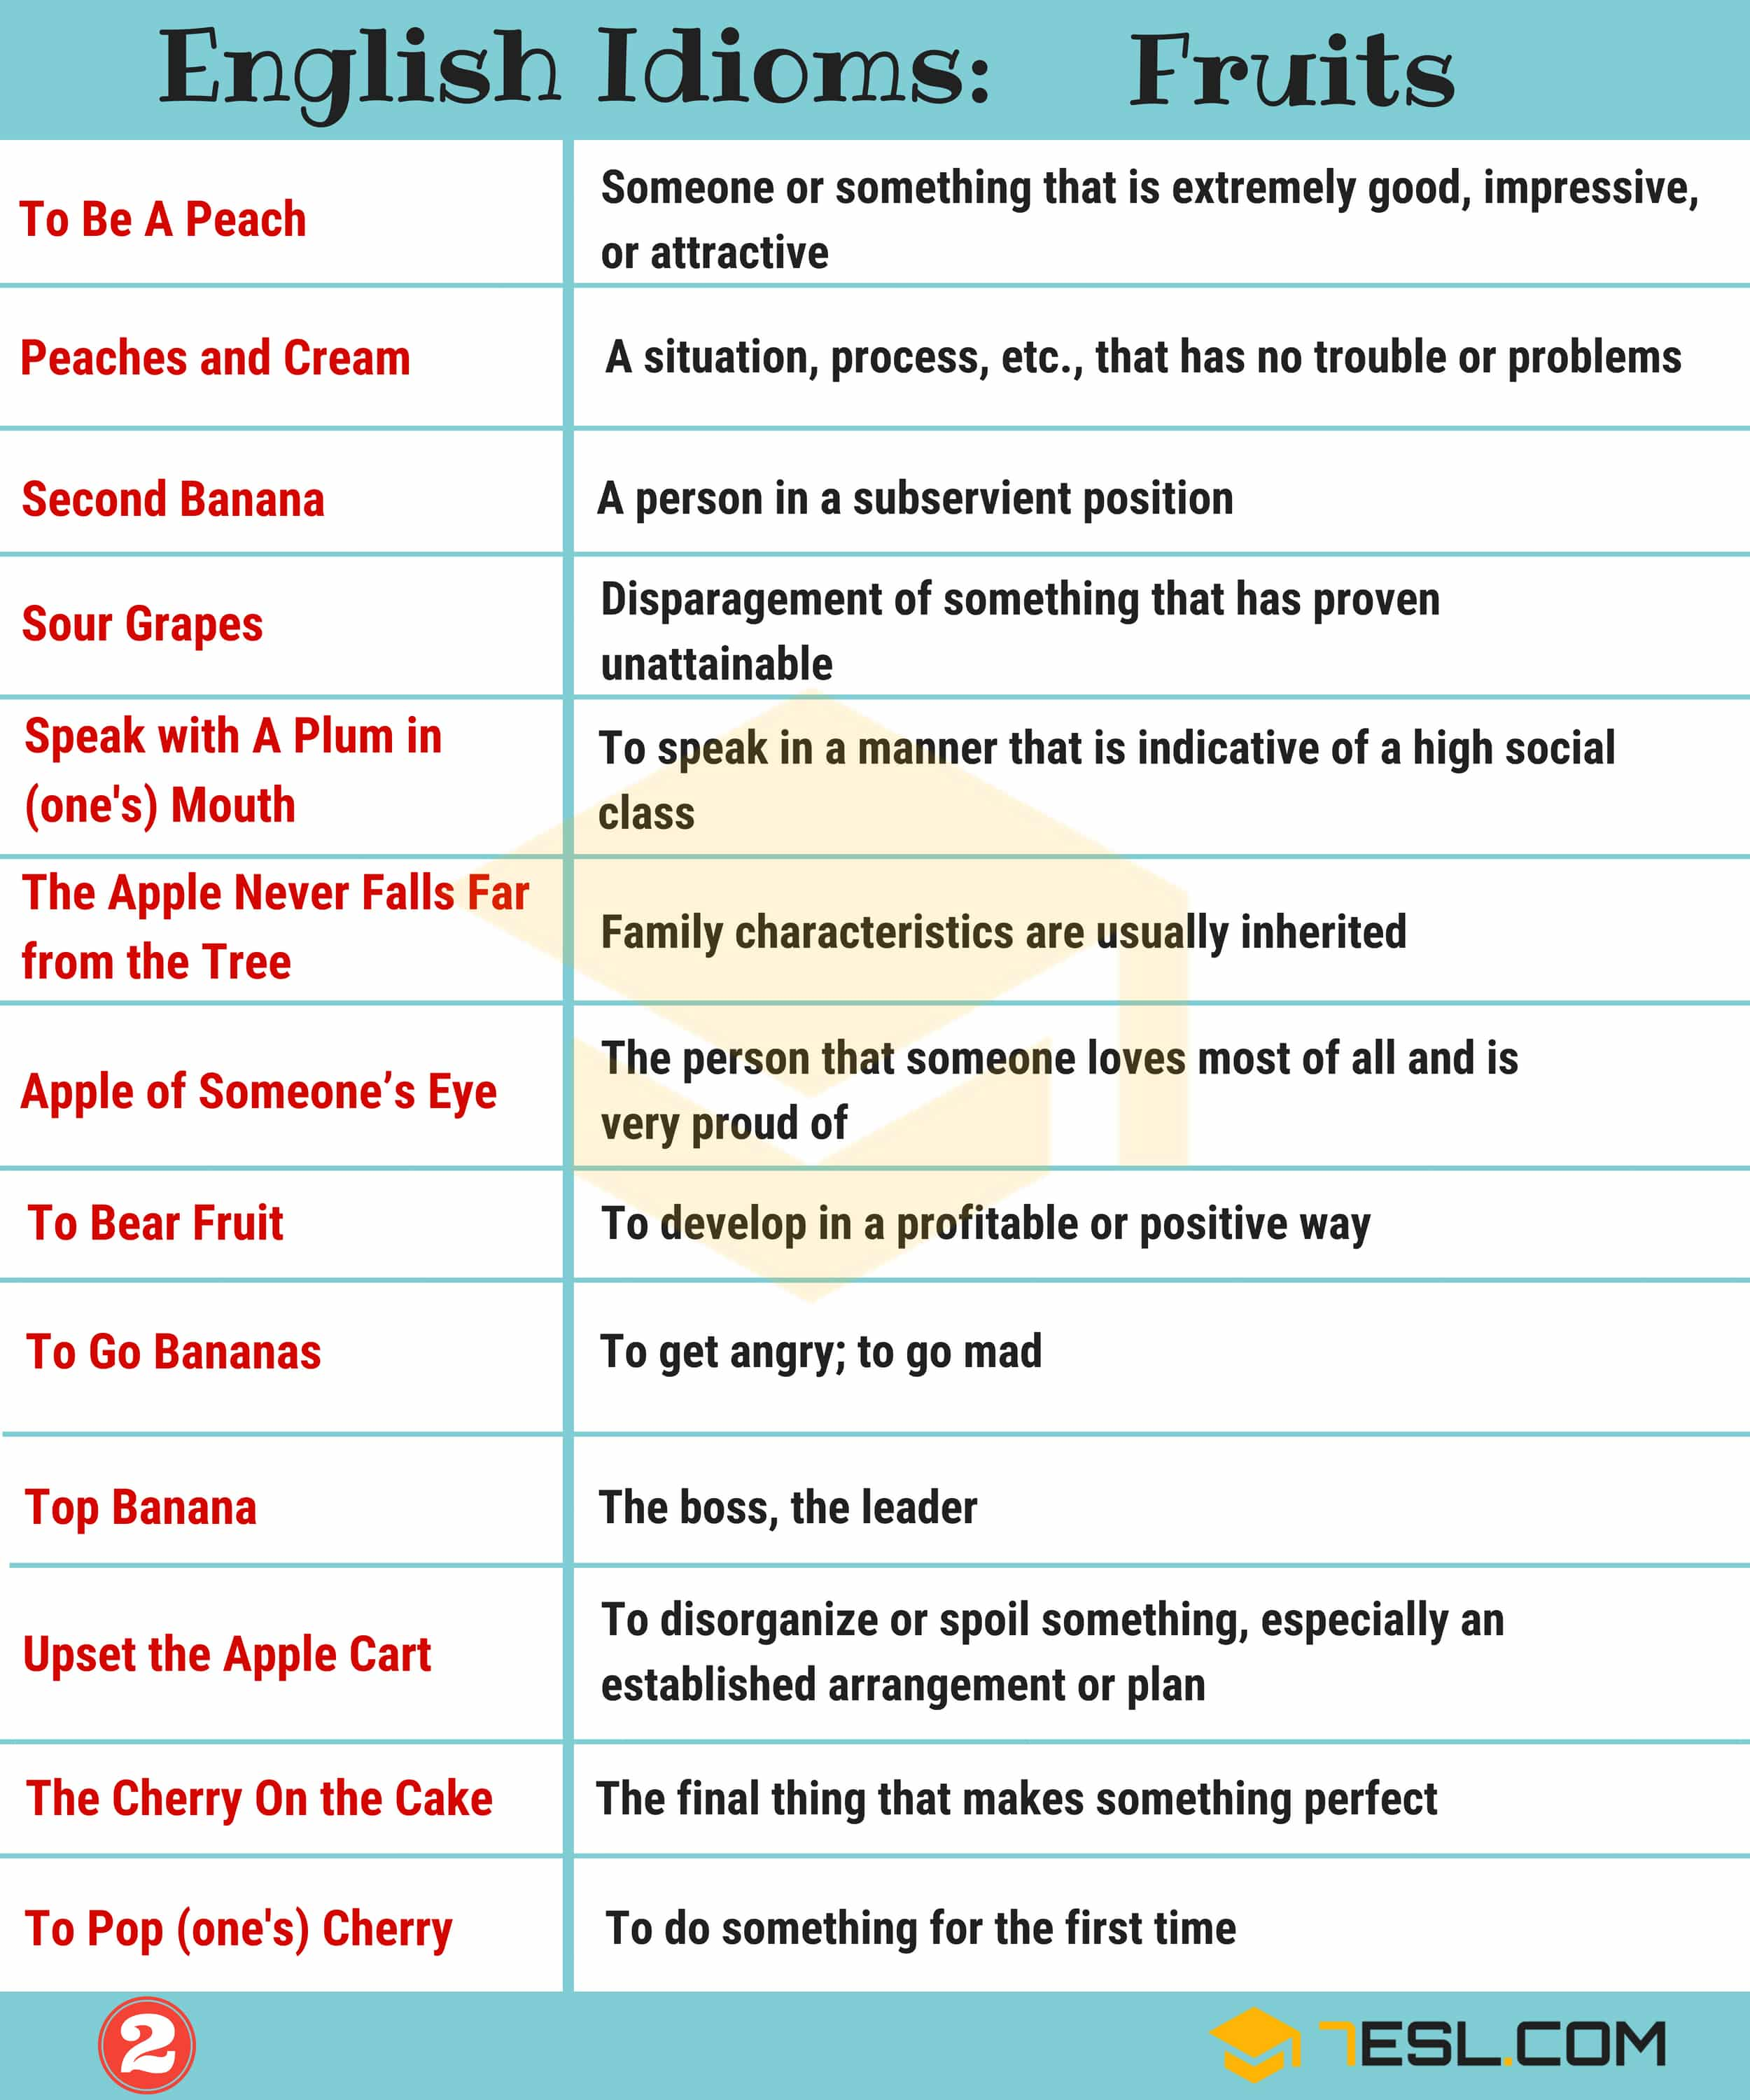 Fruit Idioms 25 Useful Idioms About Fruits In English